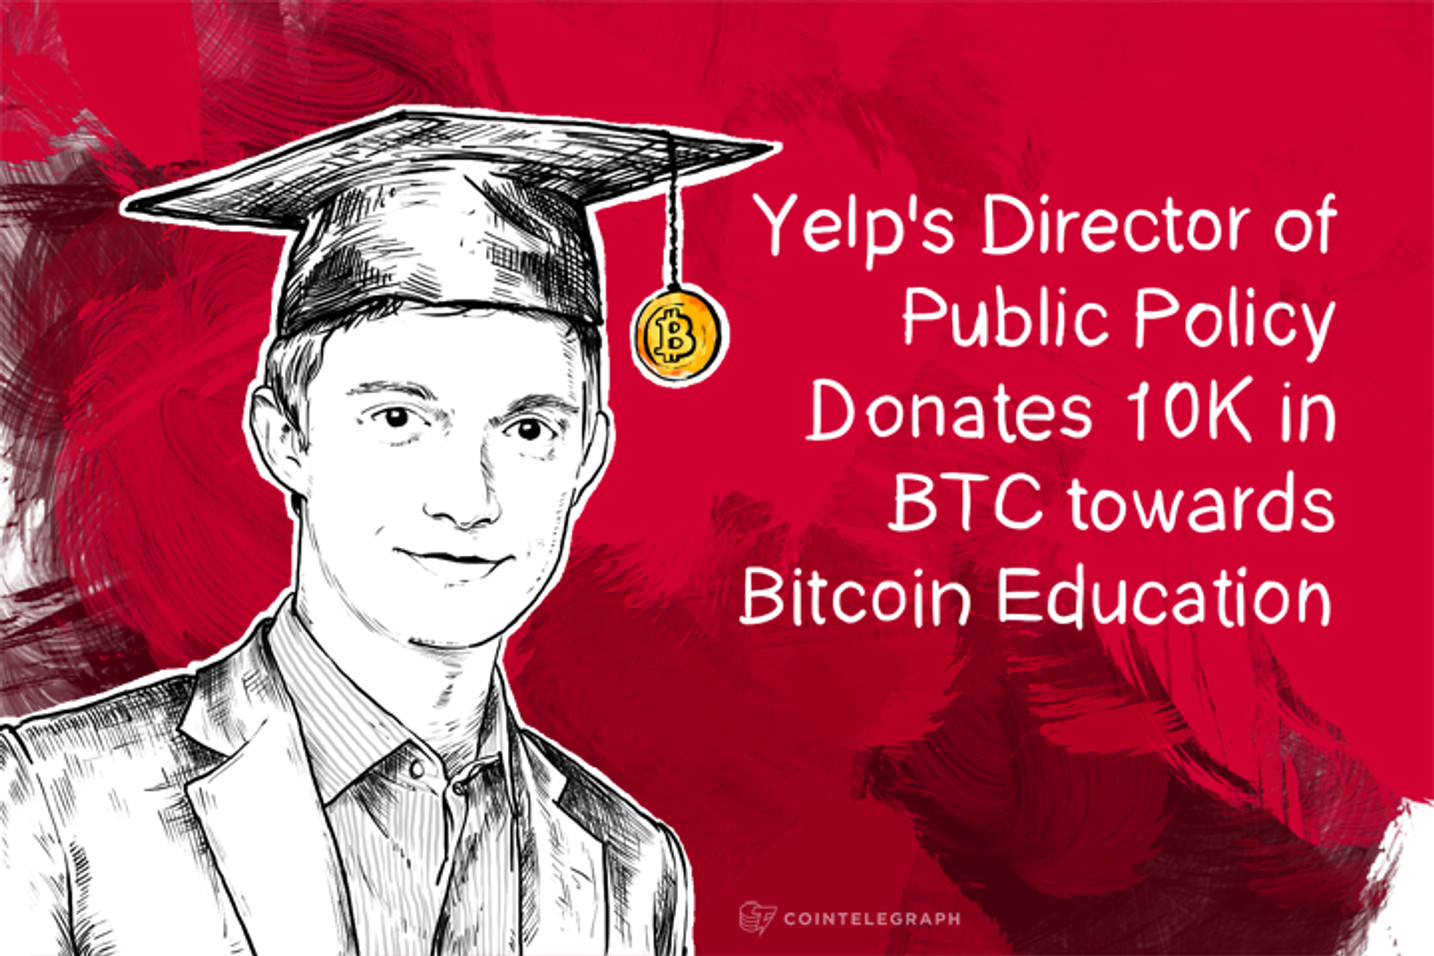 Yelp's Director of Public Policy Donates 10K in BTC towards Bitcoin Education